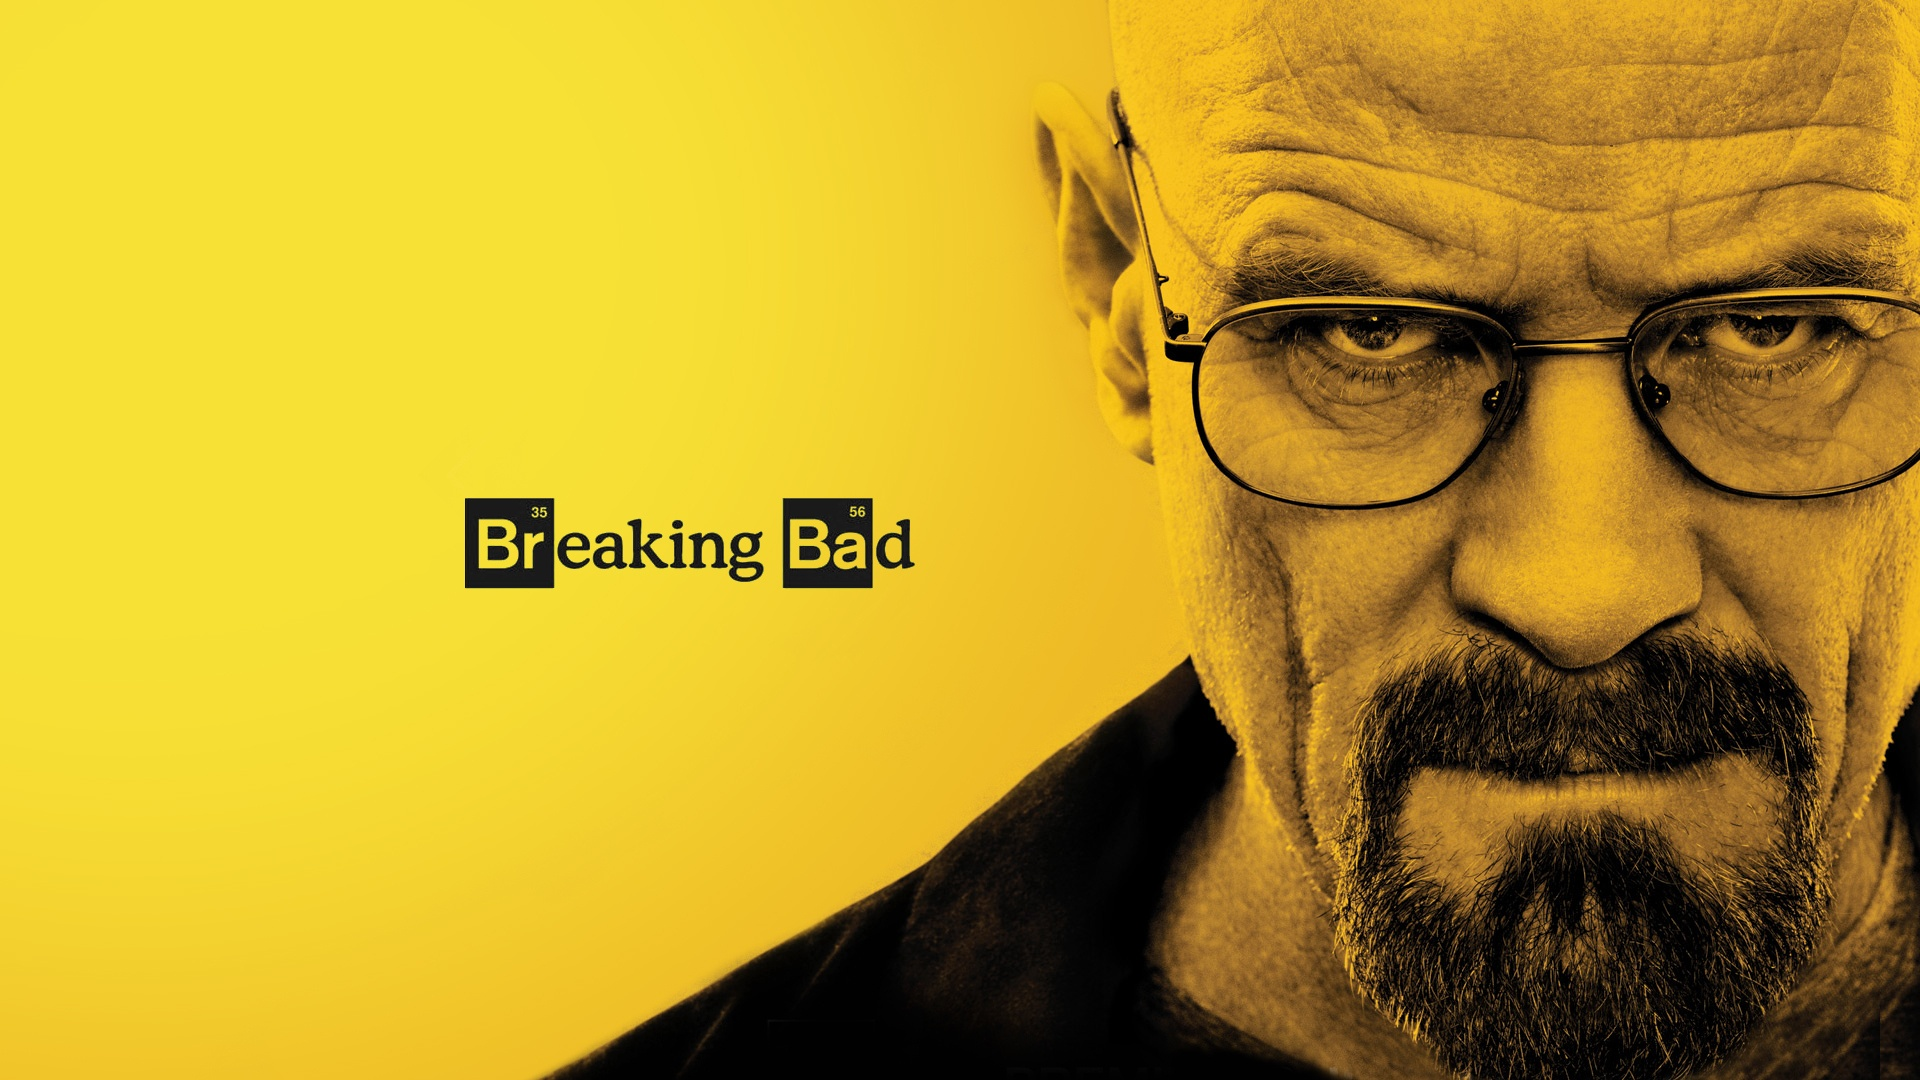 21225_breaking_bad